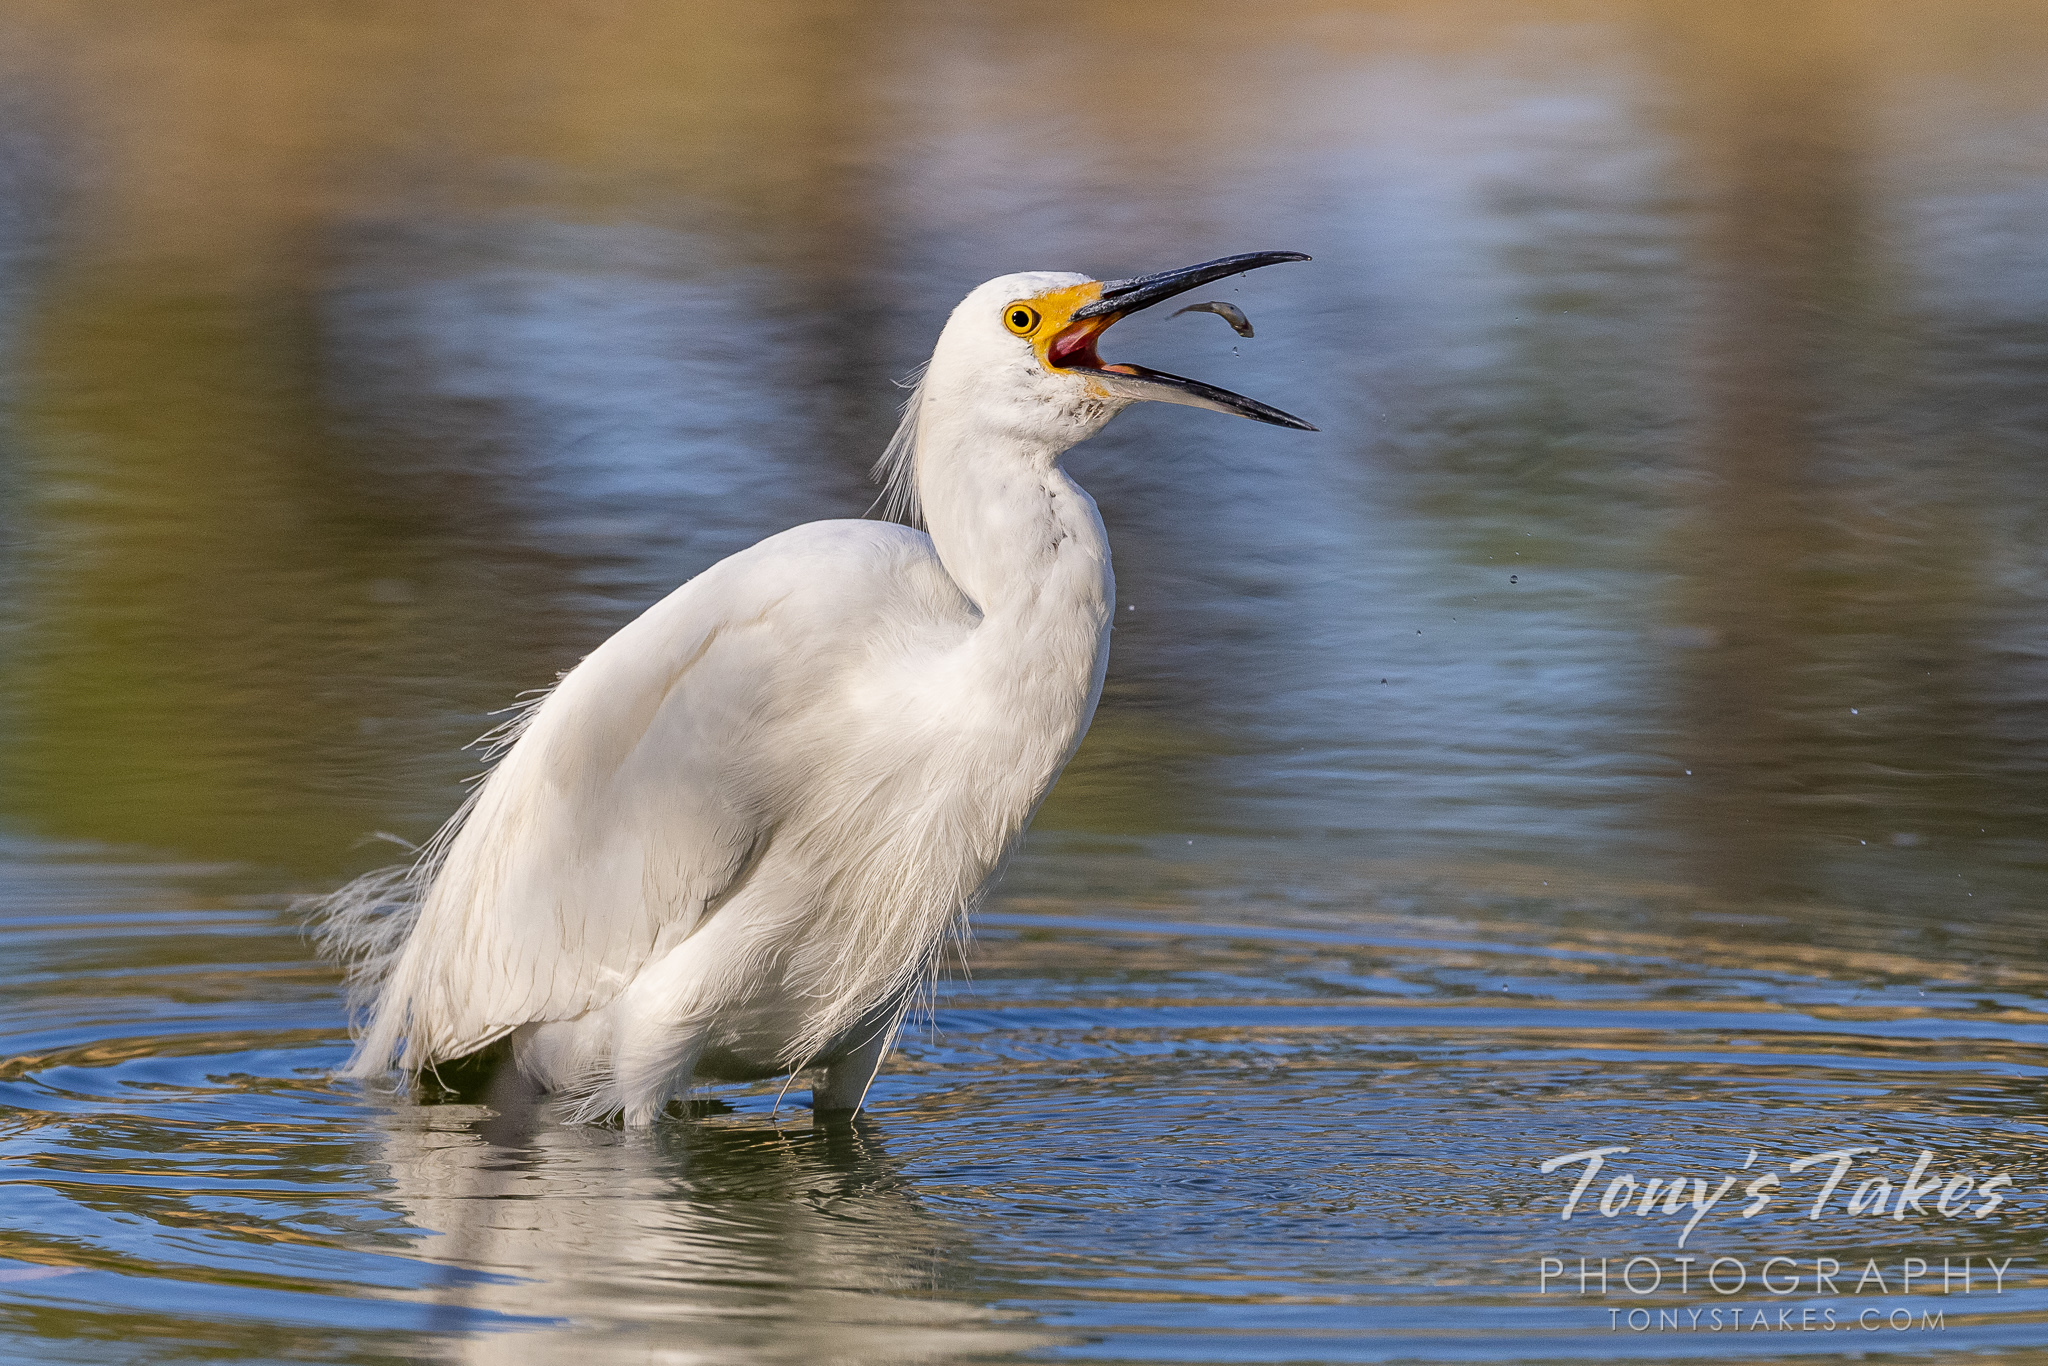 Snowy egret plays with its food. Canon R5, Canon EF 100-400mm f/4.5-5.6L IS II USM @ 330mm, 1/1600, f/8, ISO 1000.